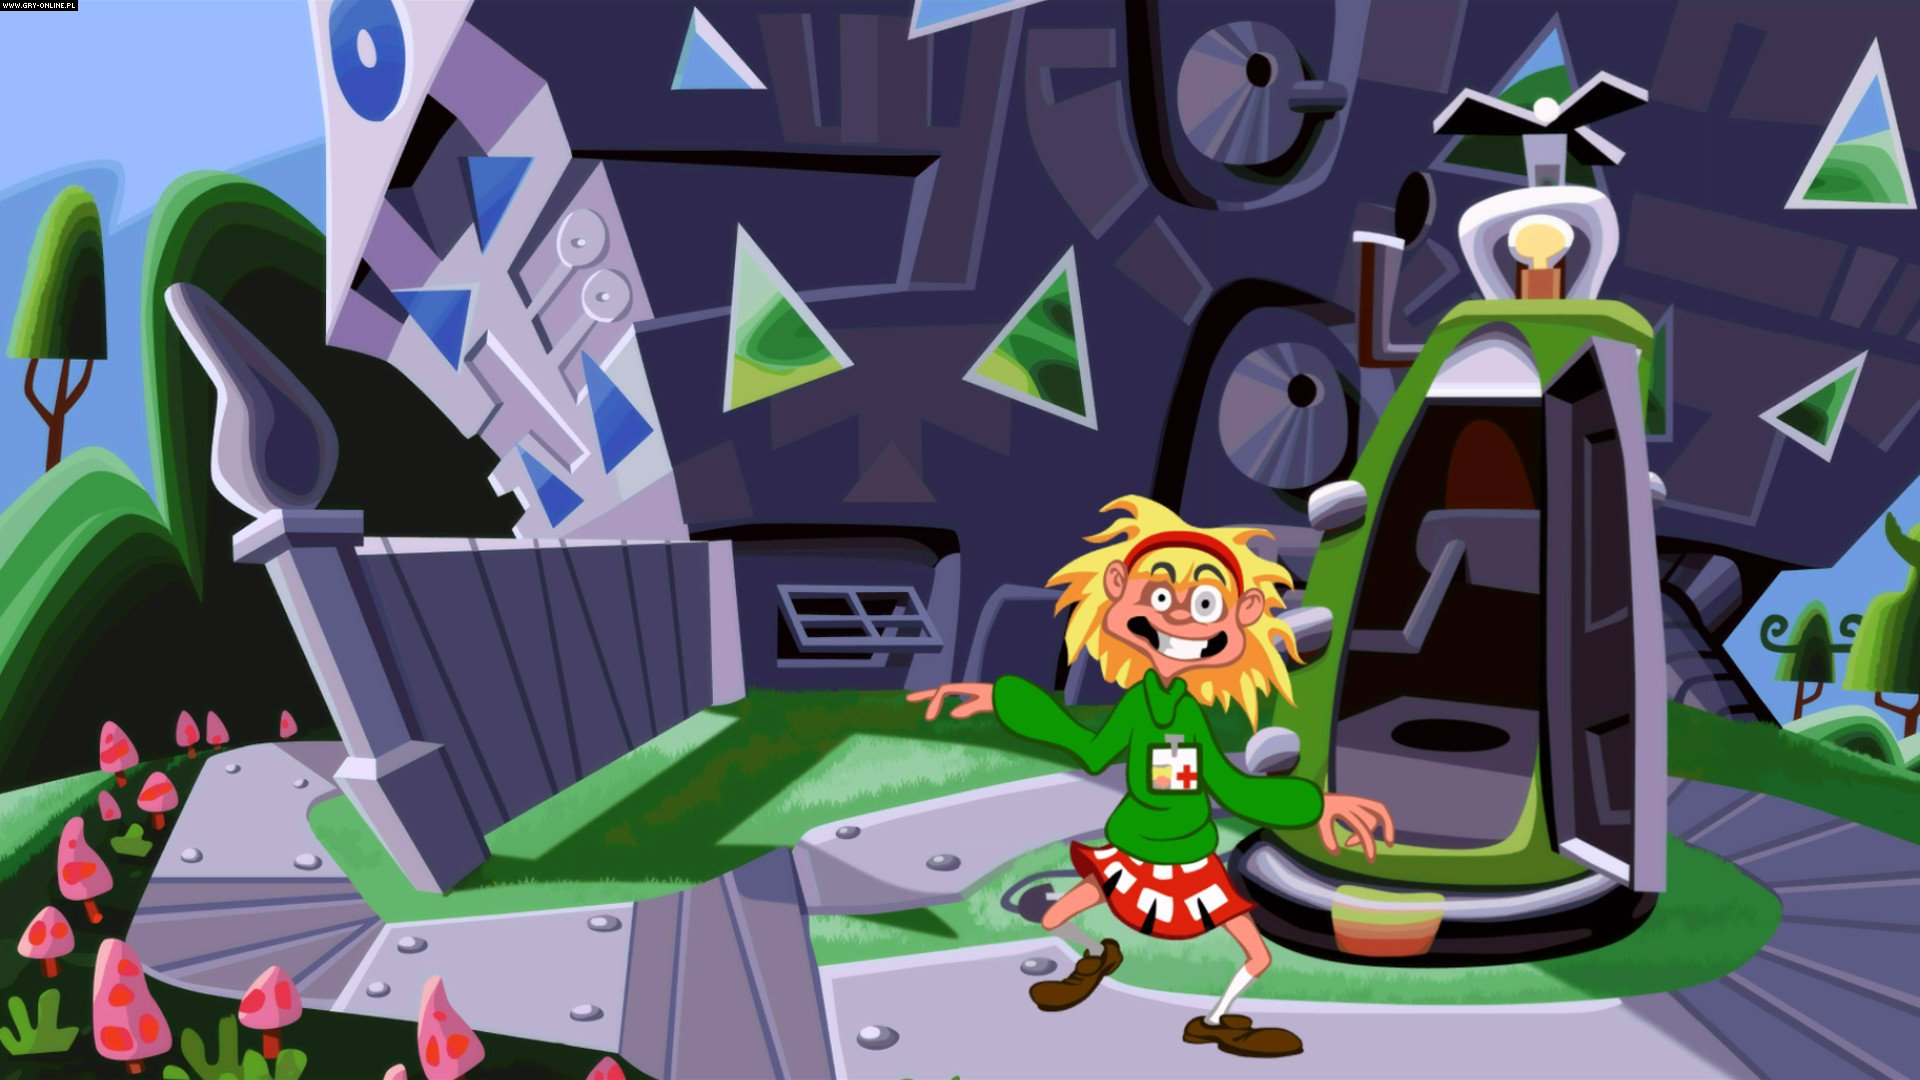 Day of the Tentacle: Remastered PC, PS4, PSV Gry Screen 7/14, Double Fine Productions, Inc.